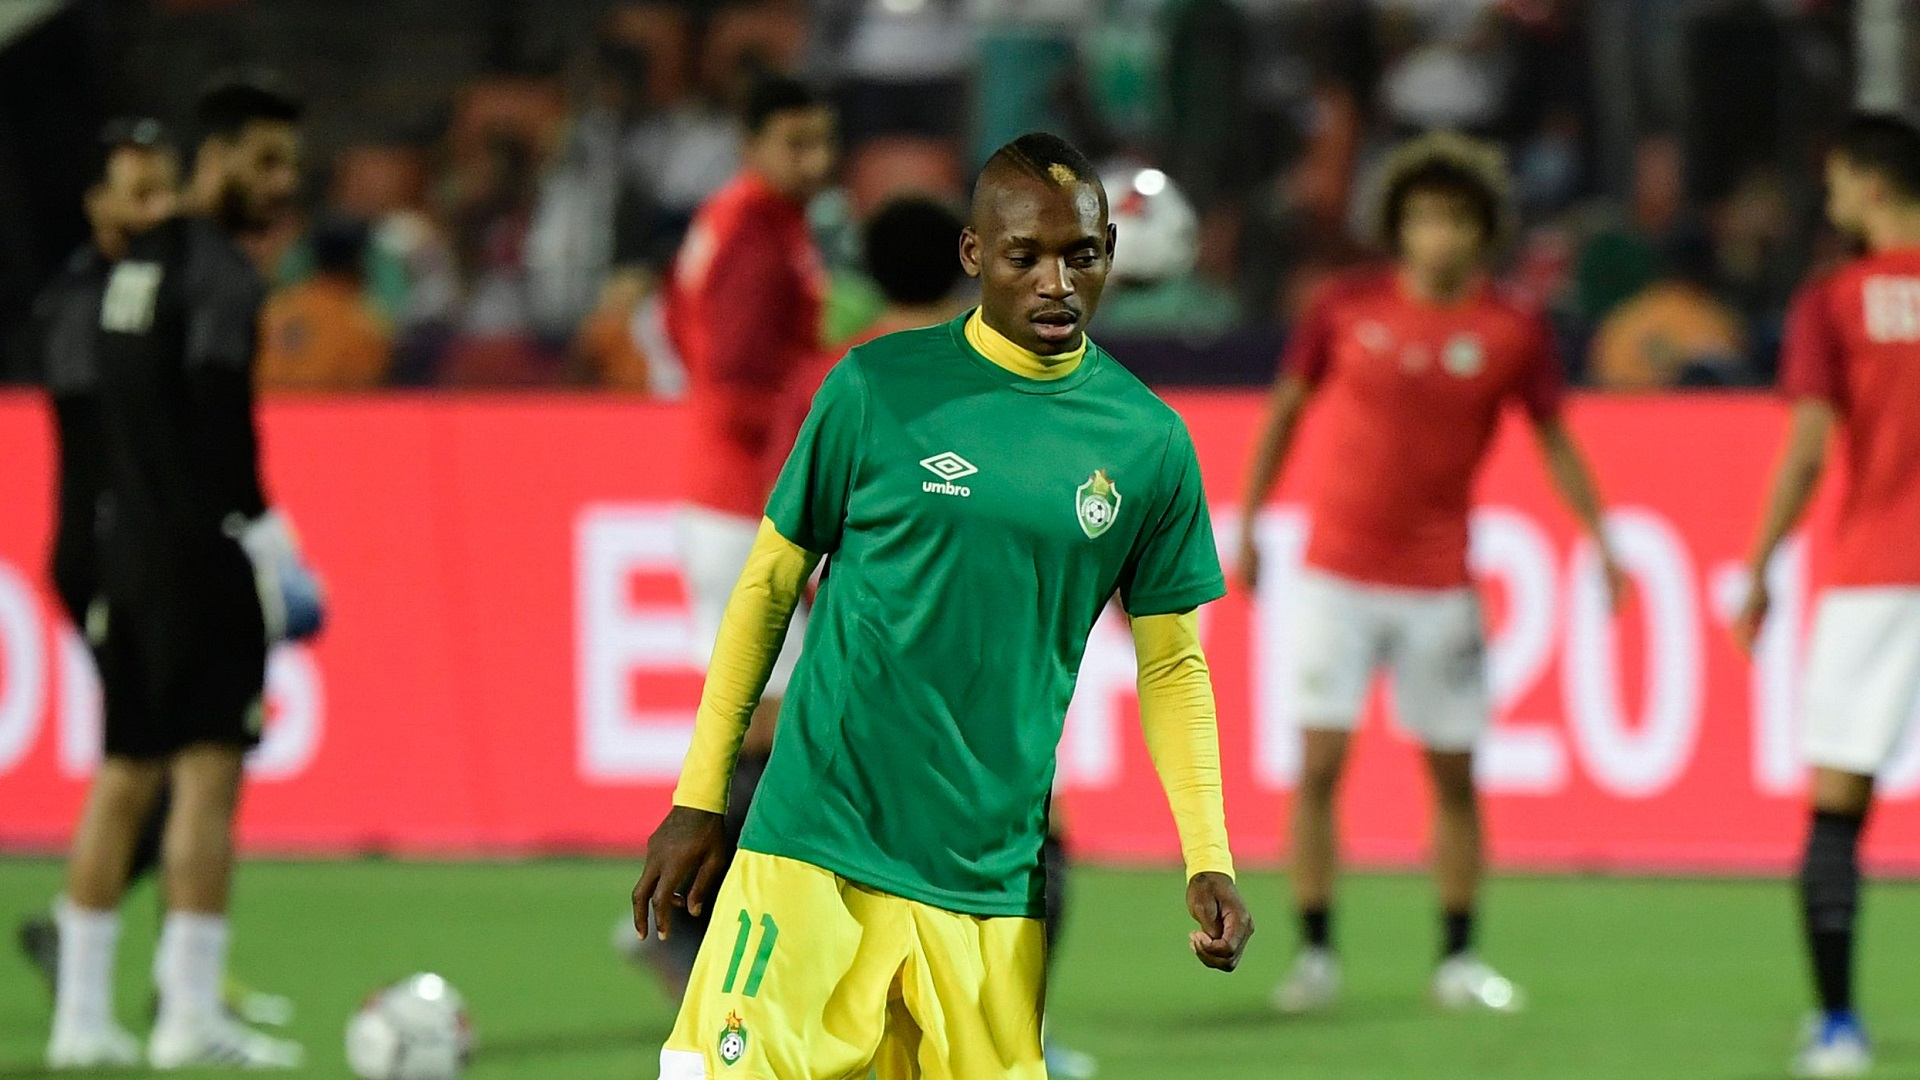 Zimbabwe's midfielder Khama Billiat (L) warms up ahead of the 2019 Africa Cup of Nations (CAN) football match between Egypt and Zimbabwe at Cairo International Stadium on June 21, 2019.j